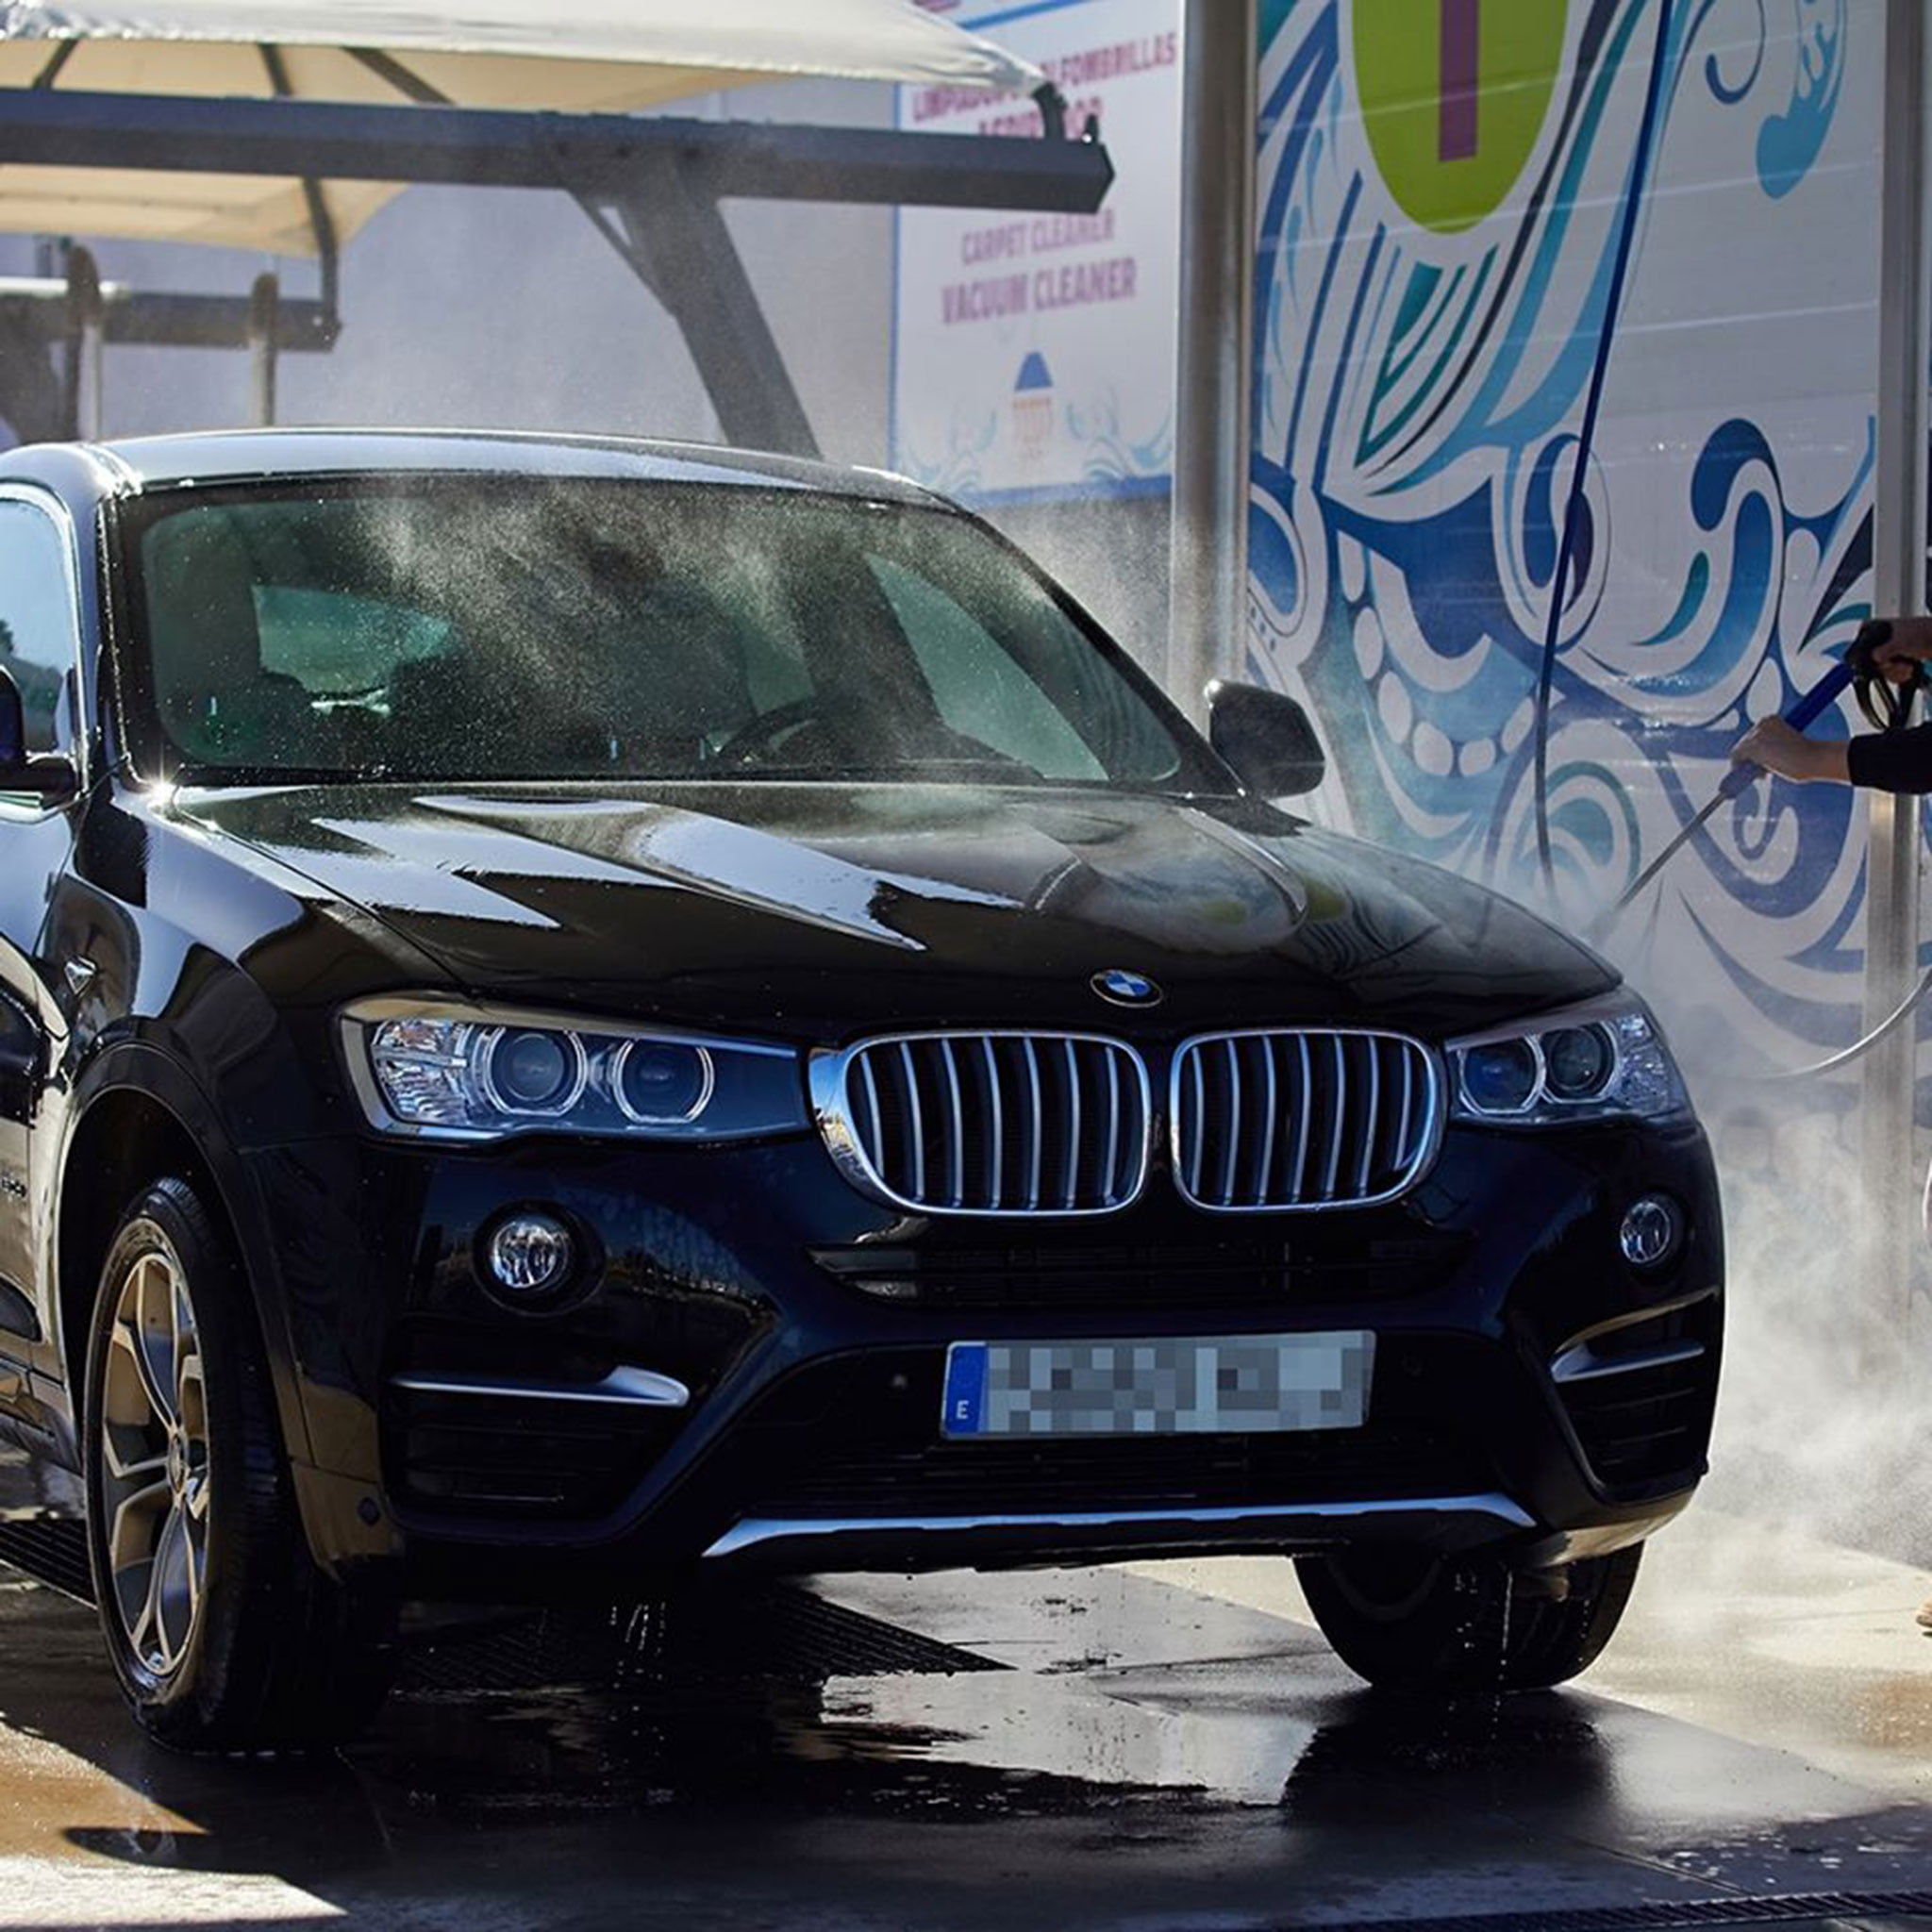 Car wash with various services - Teckmar Gas Stations